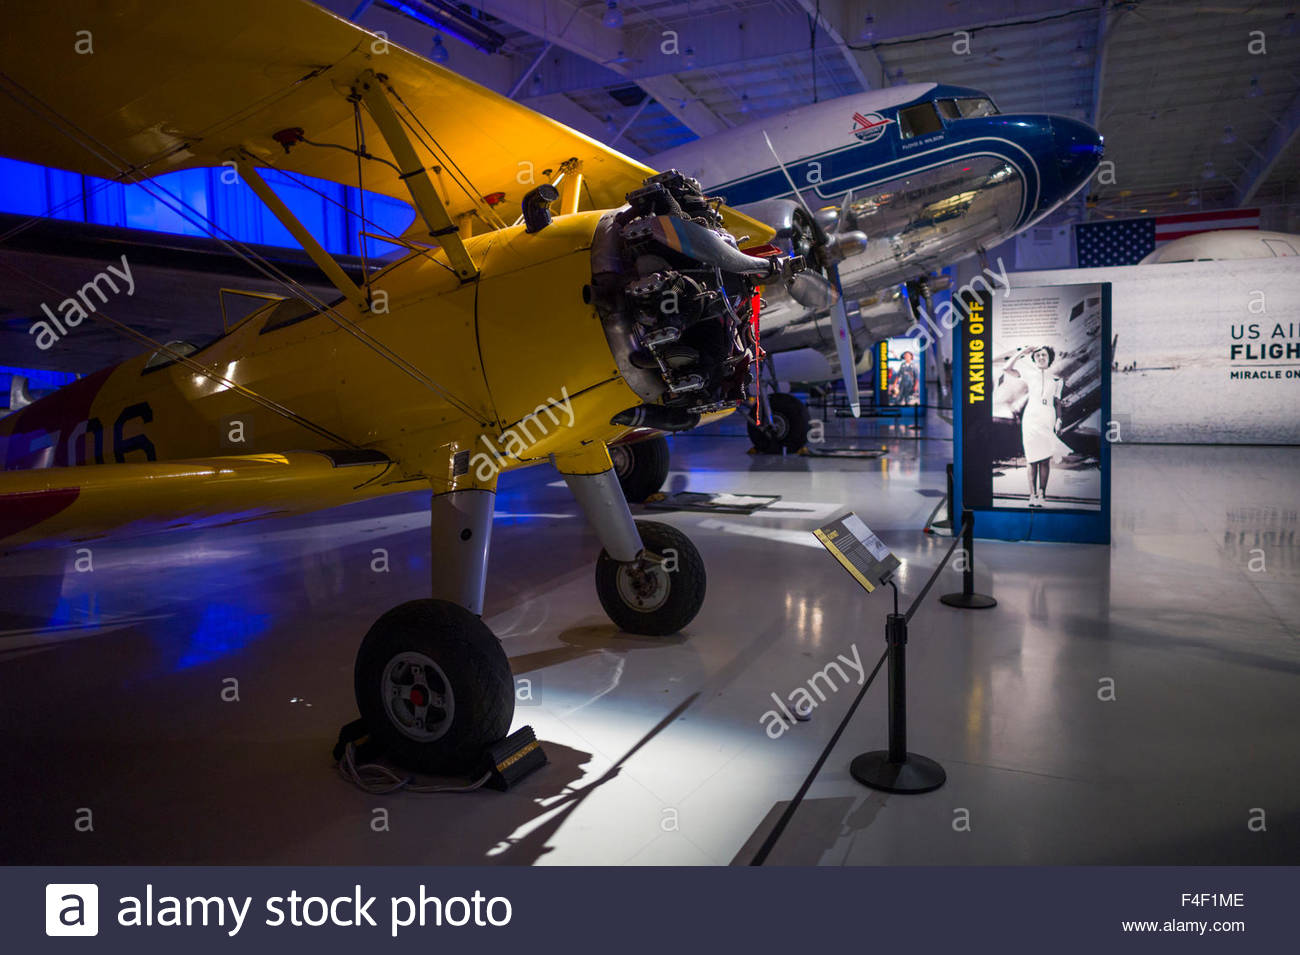 North Carolina, Charlotte, Carolina's Aviation Museum, interior - Stock Image